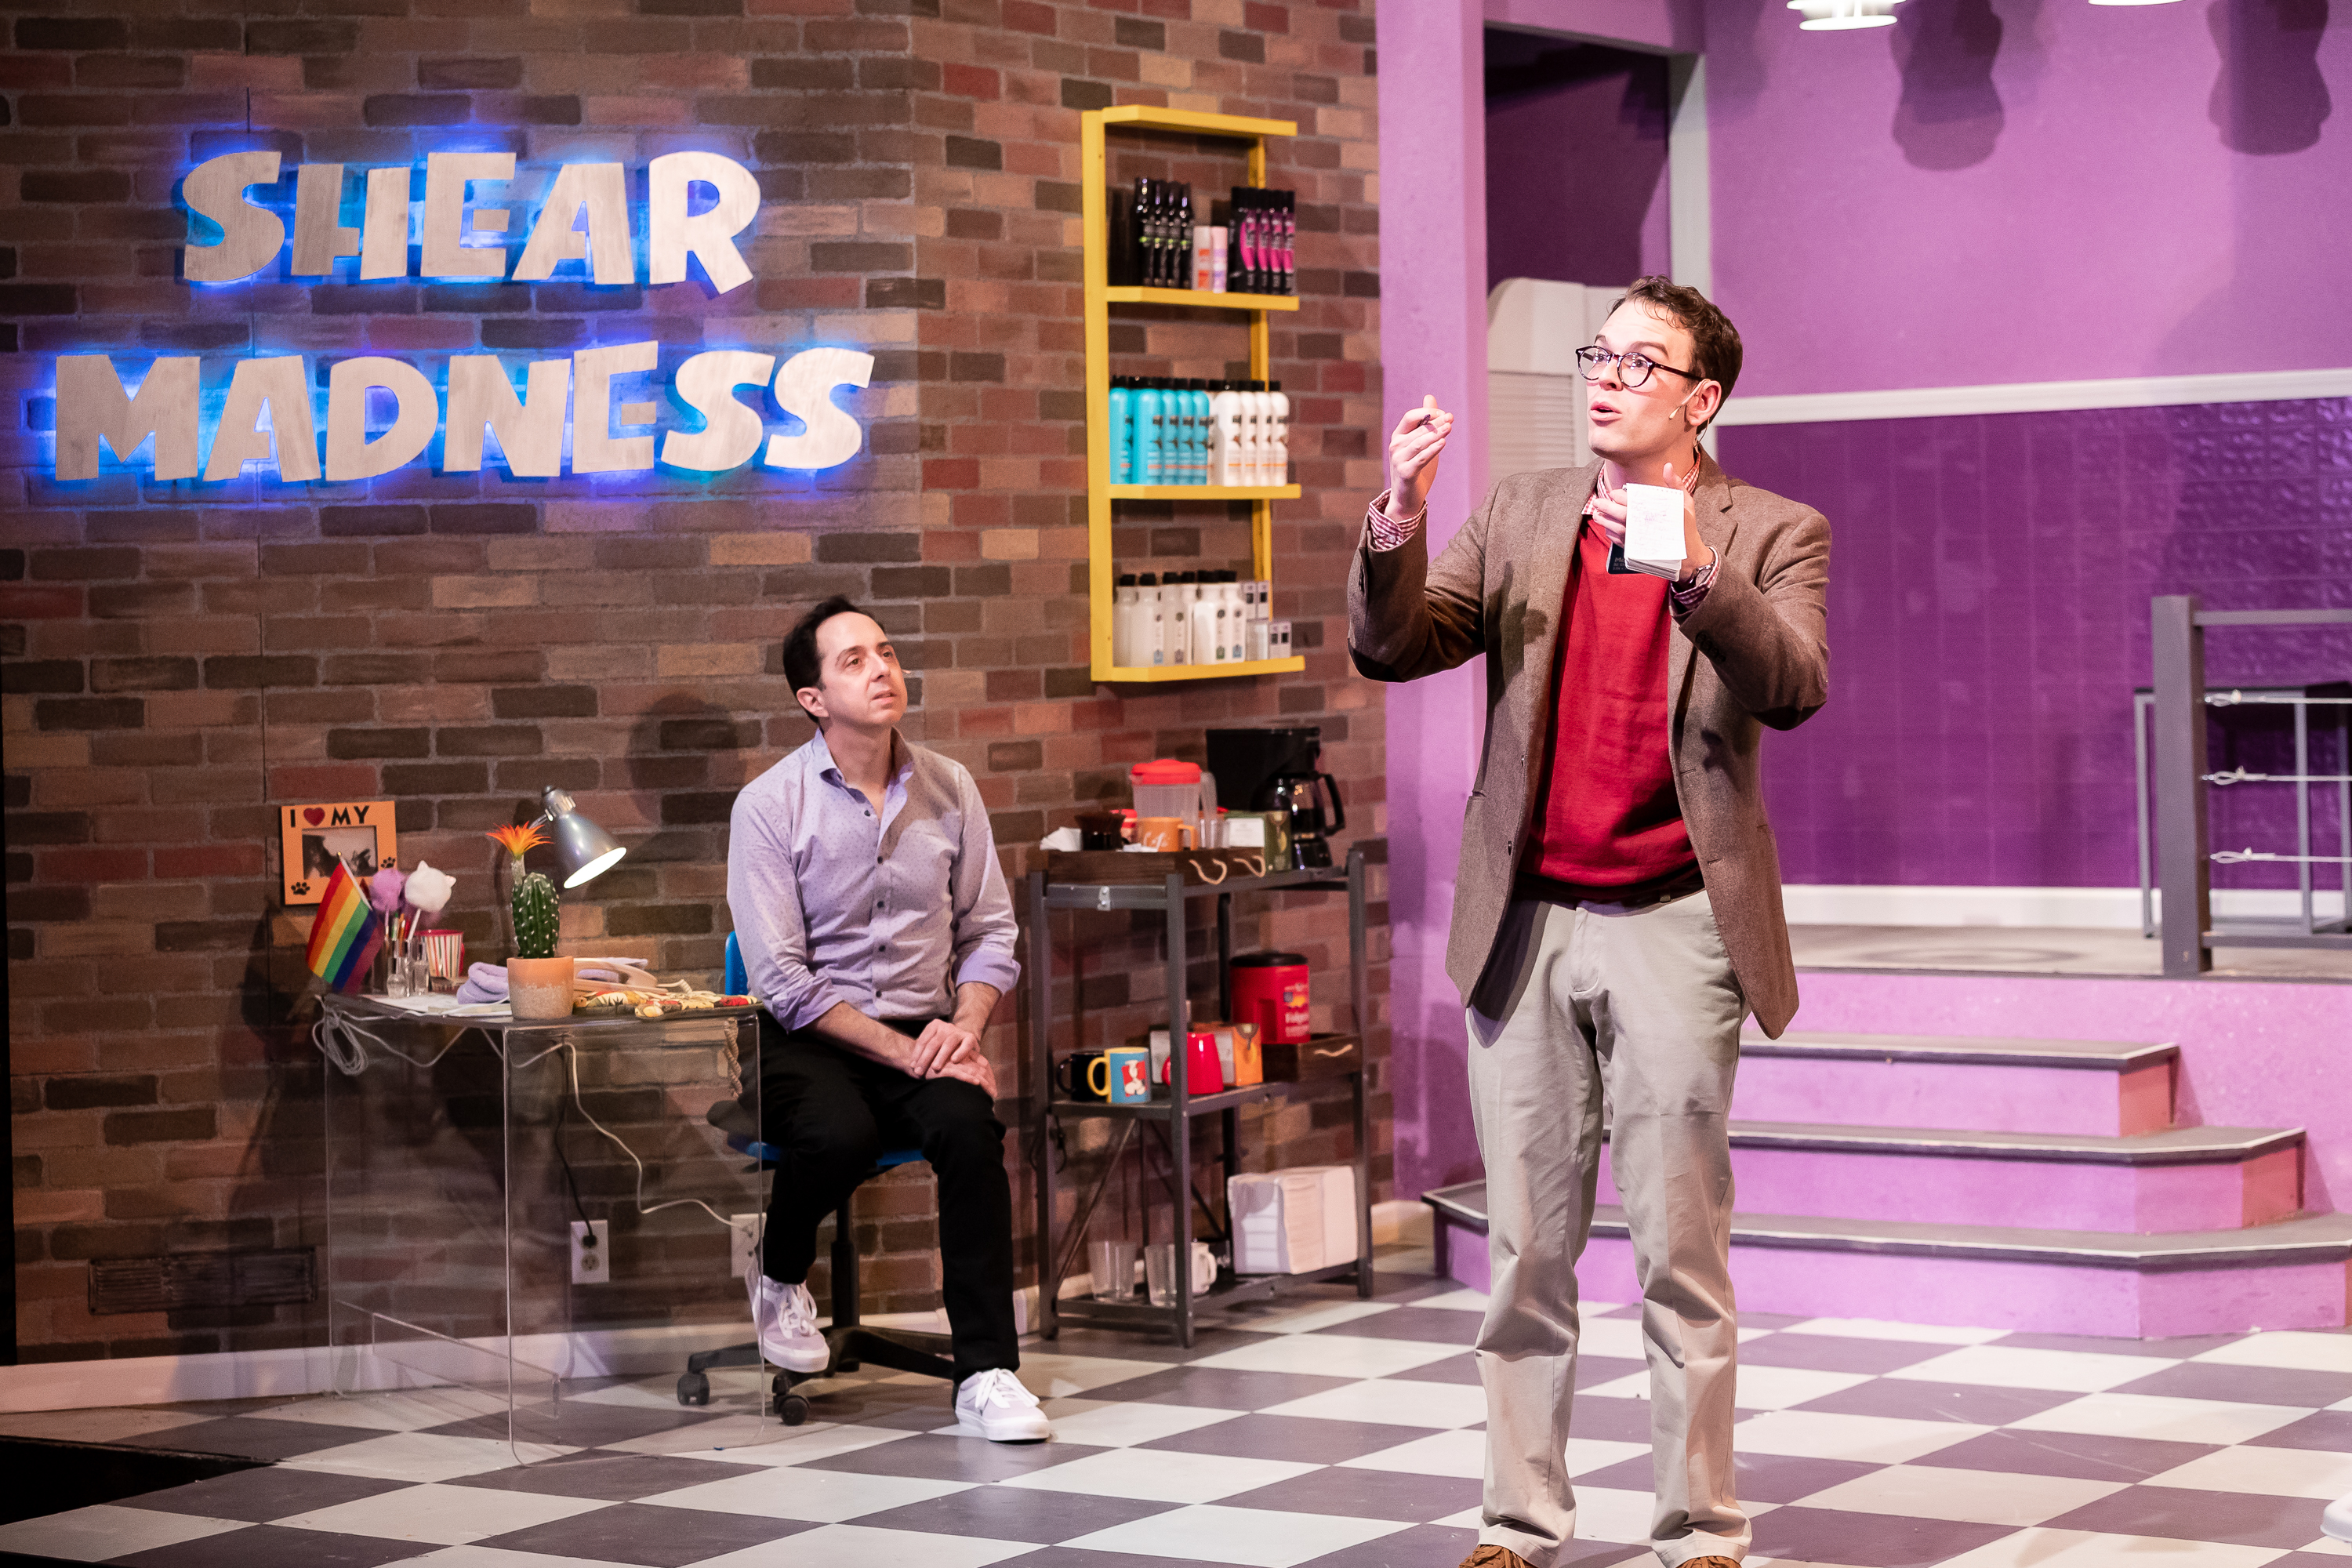 "Salon owner Tony Whitcomb (Ed Kross, left) is questioned by detective Mikey Thomas (Sam Woods) in a scene from ""Shear Madness"" at the Mercury Theater."